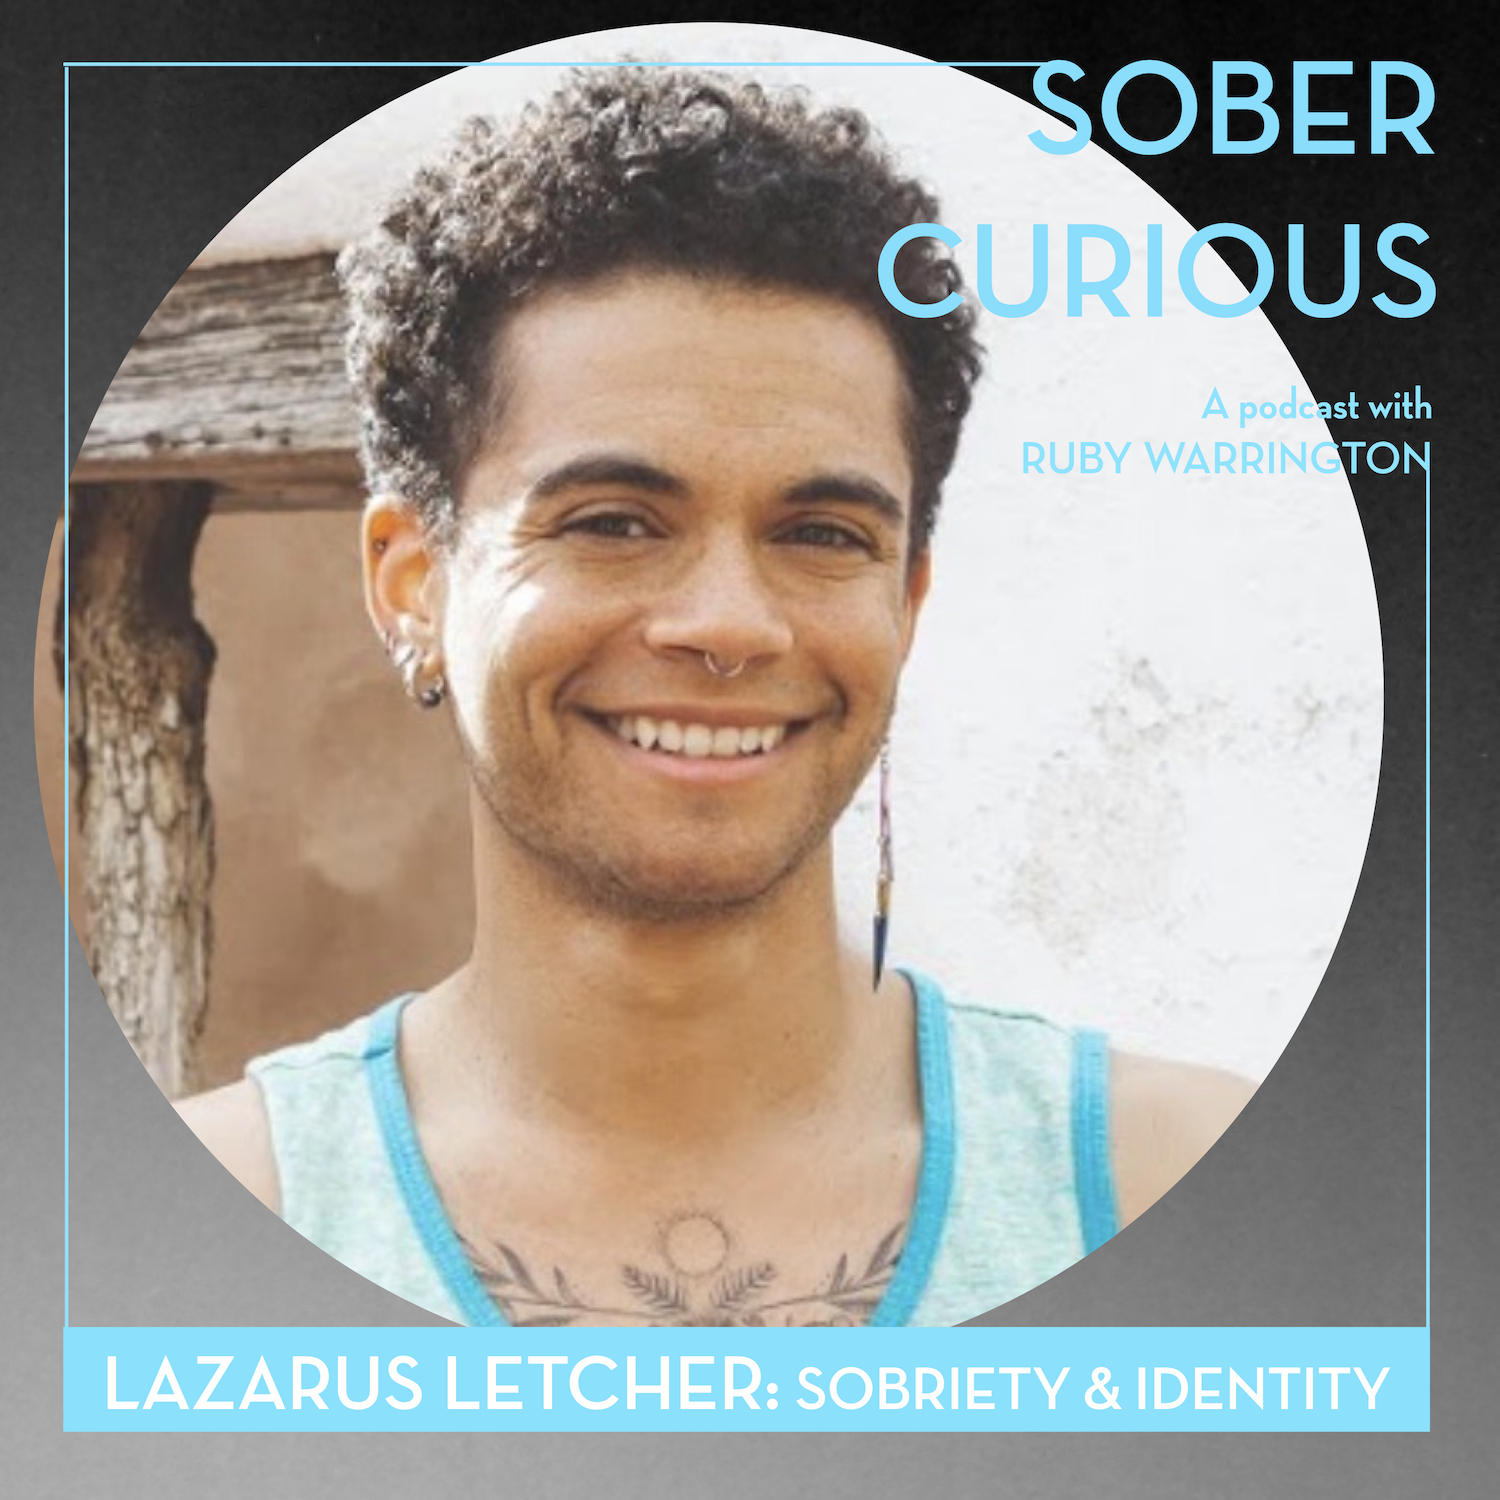 Sober Curious podcast Lazarus Letcher Ruby Warrington